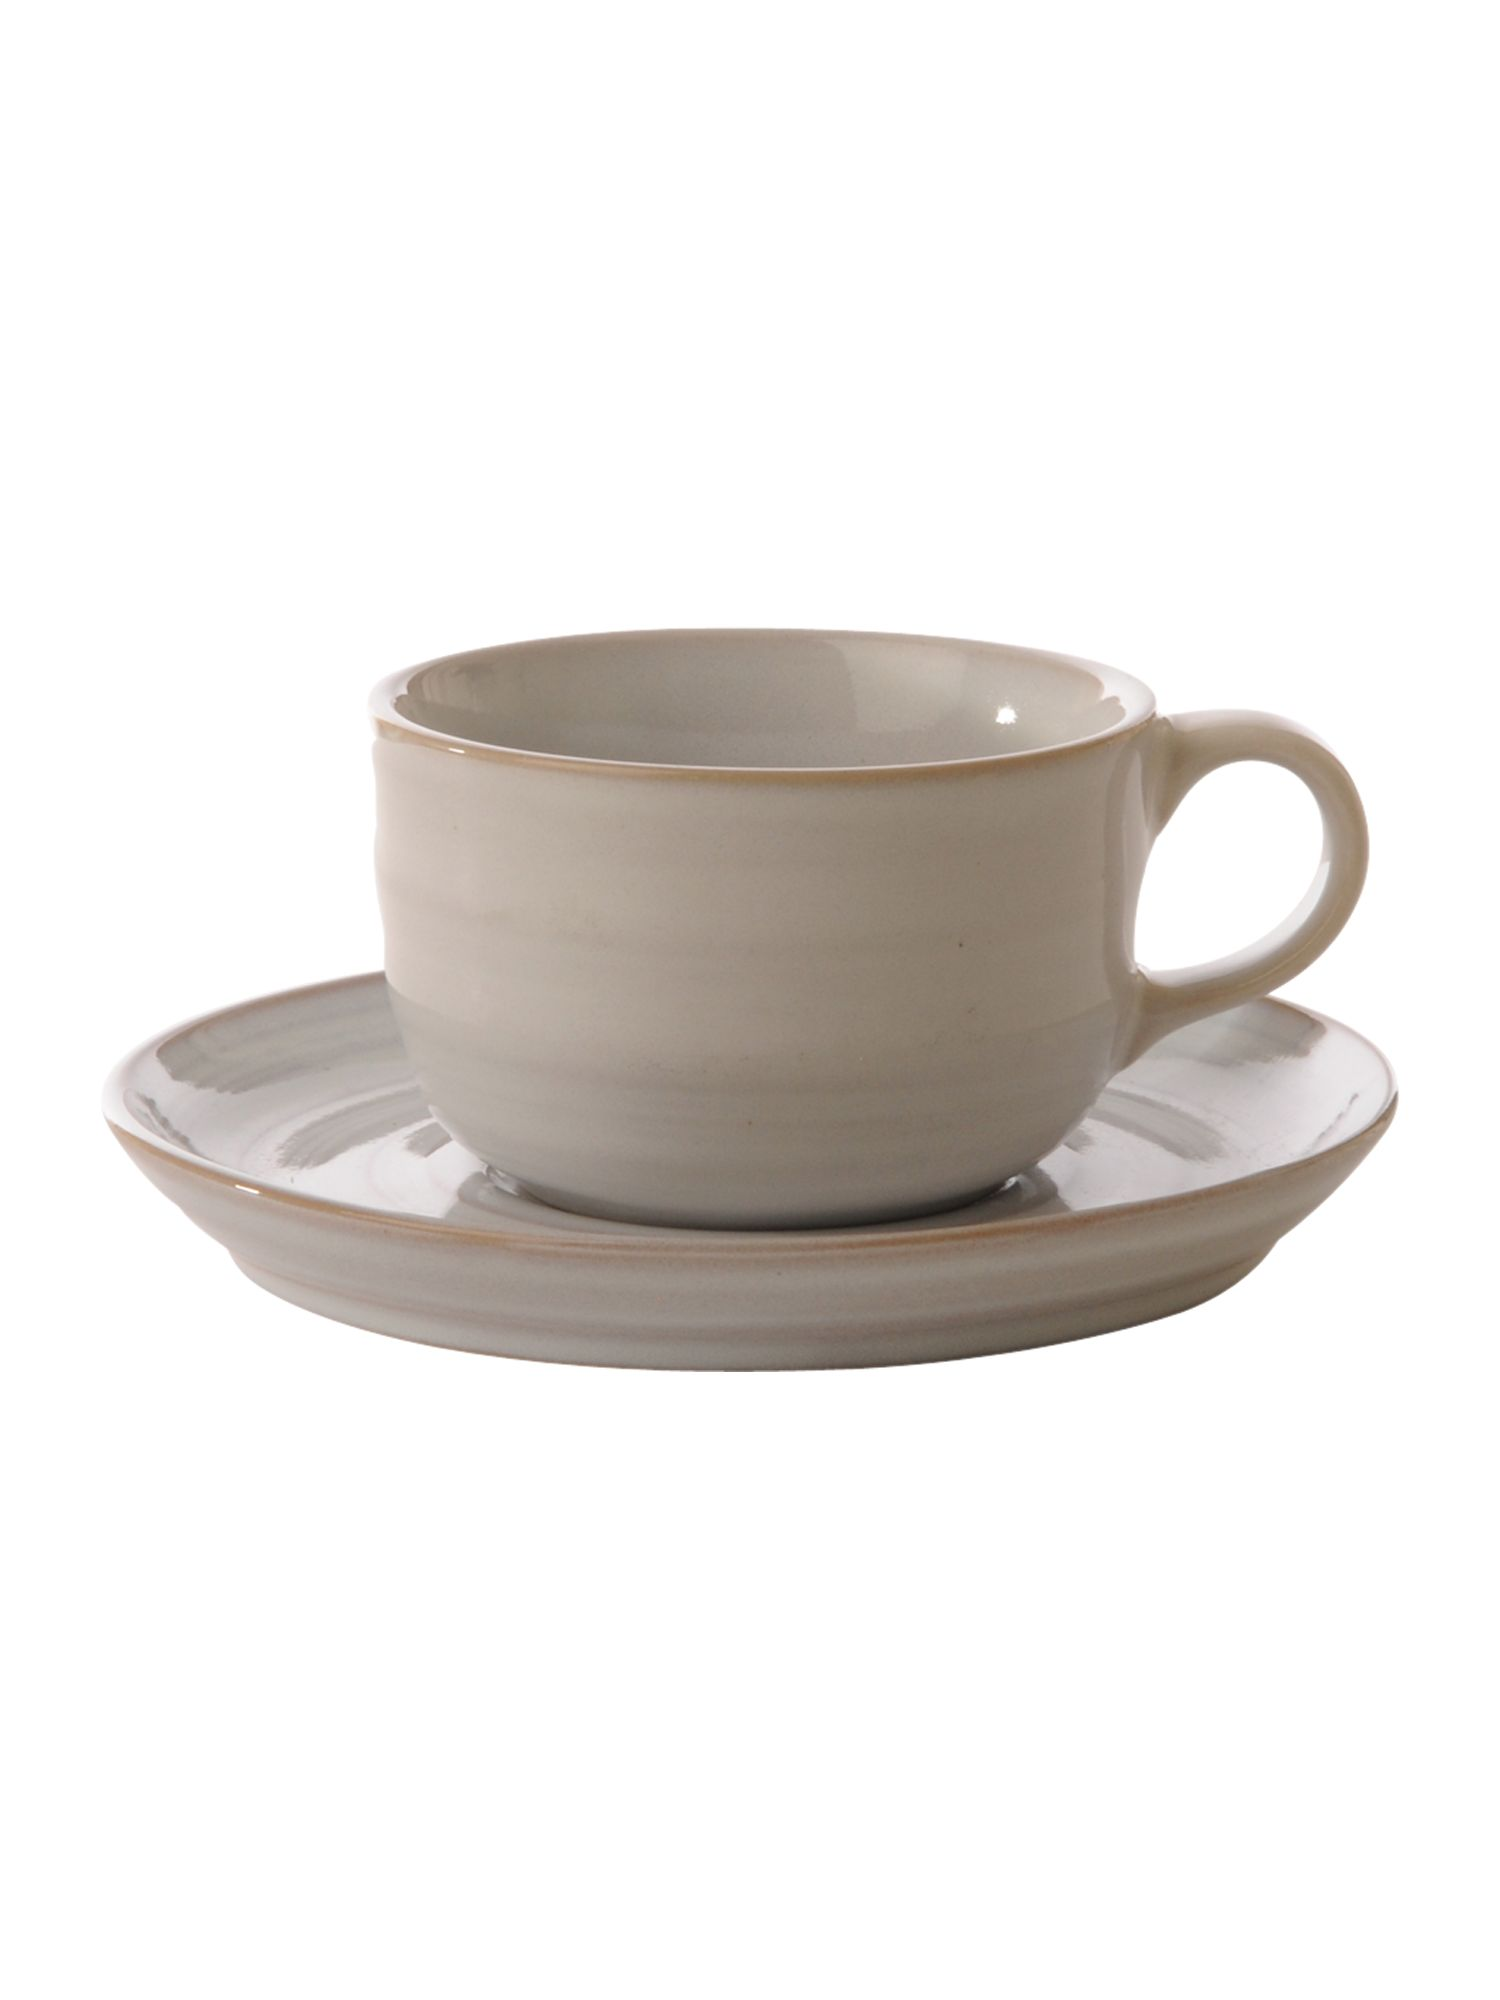 Echo white teacup and saucer